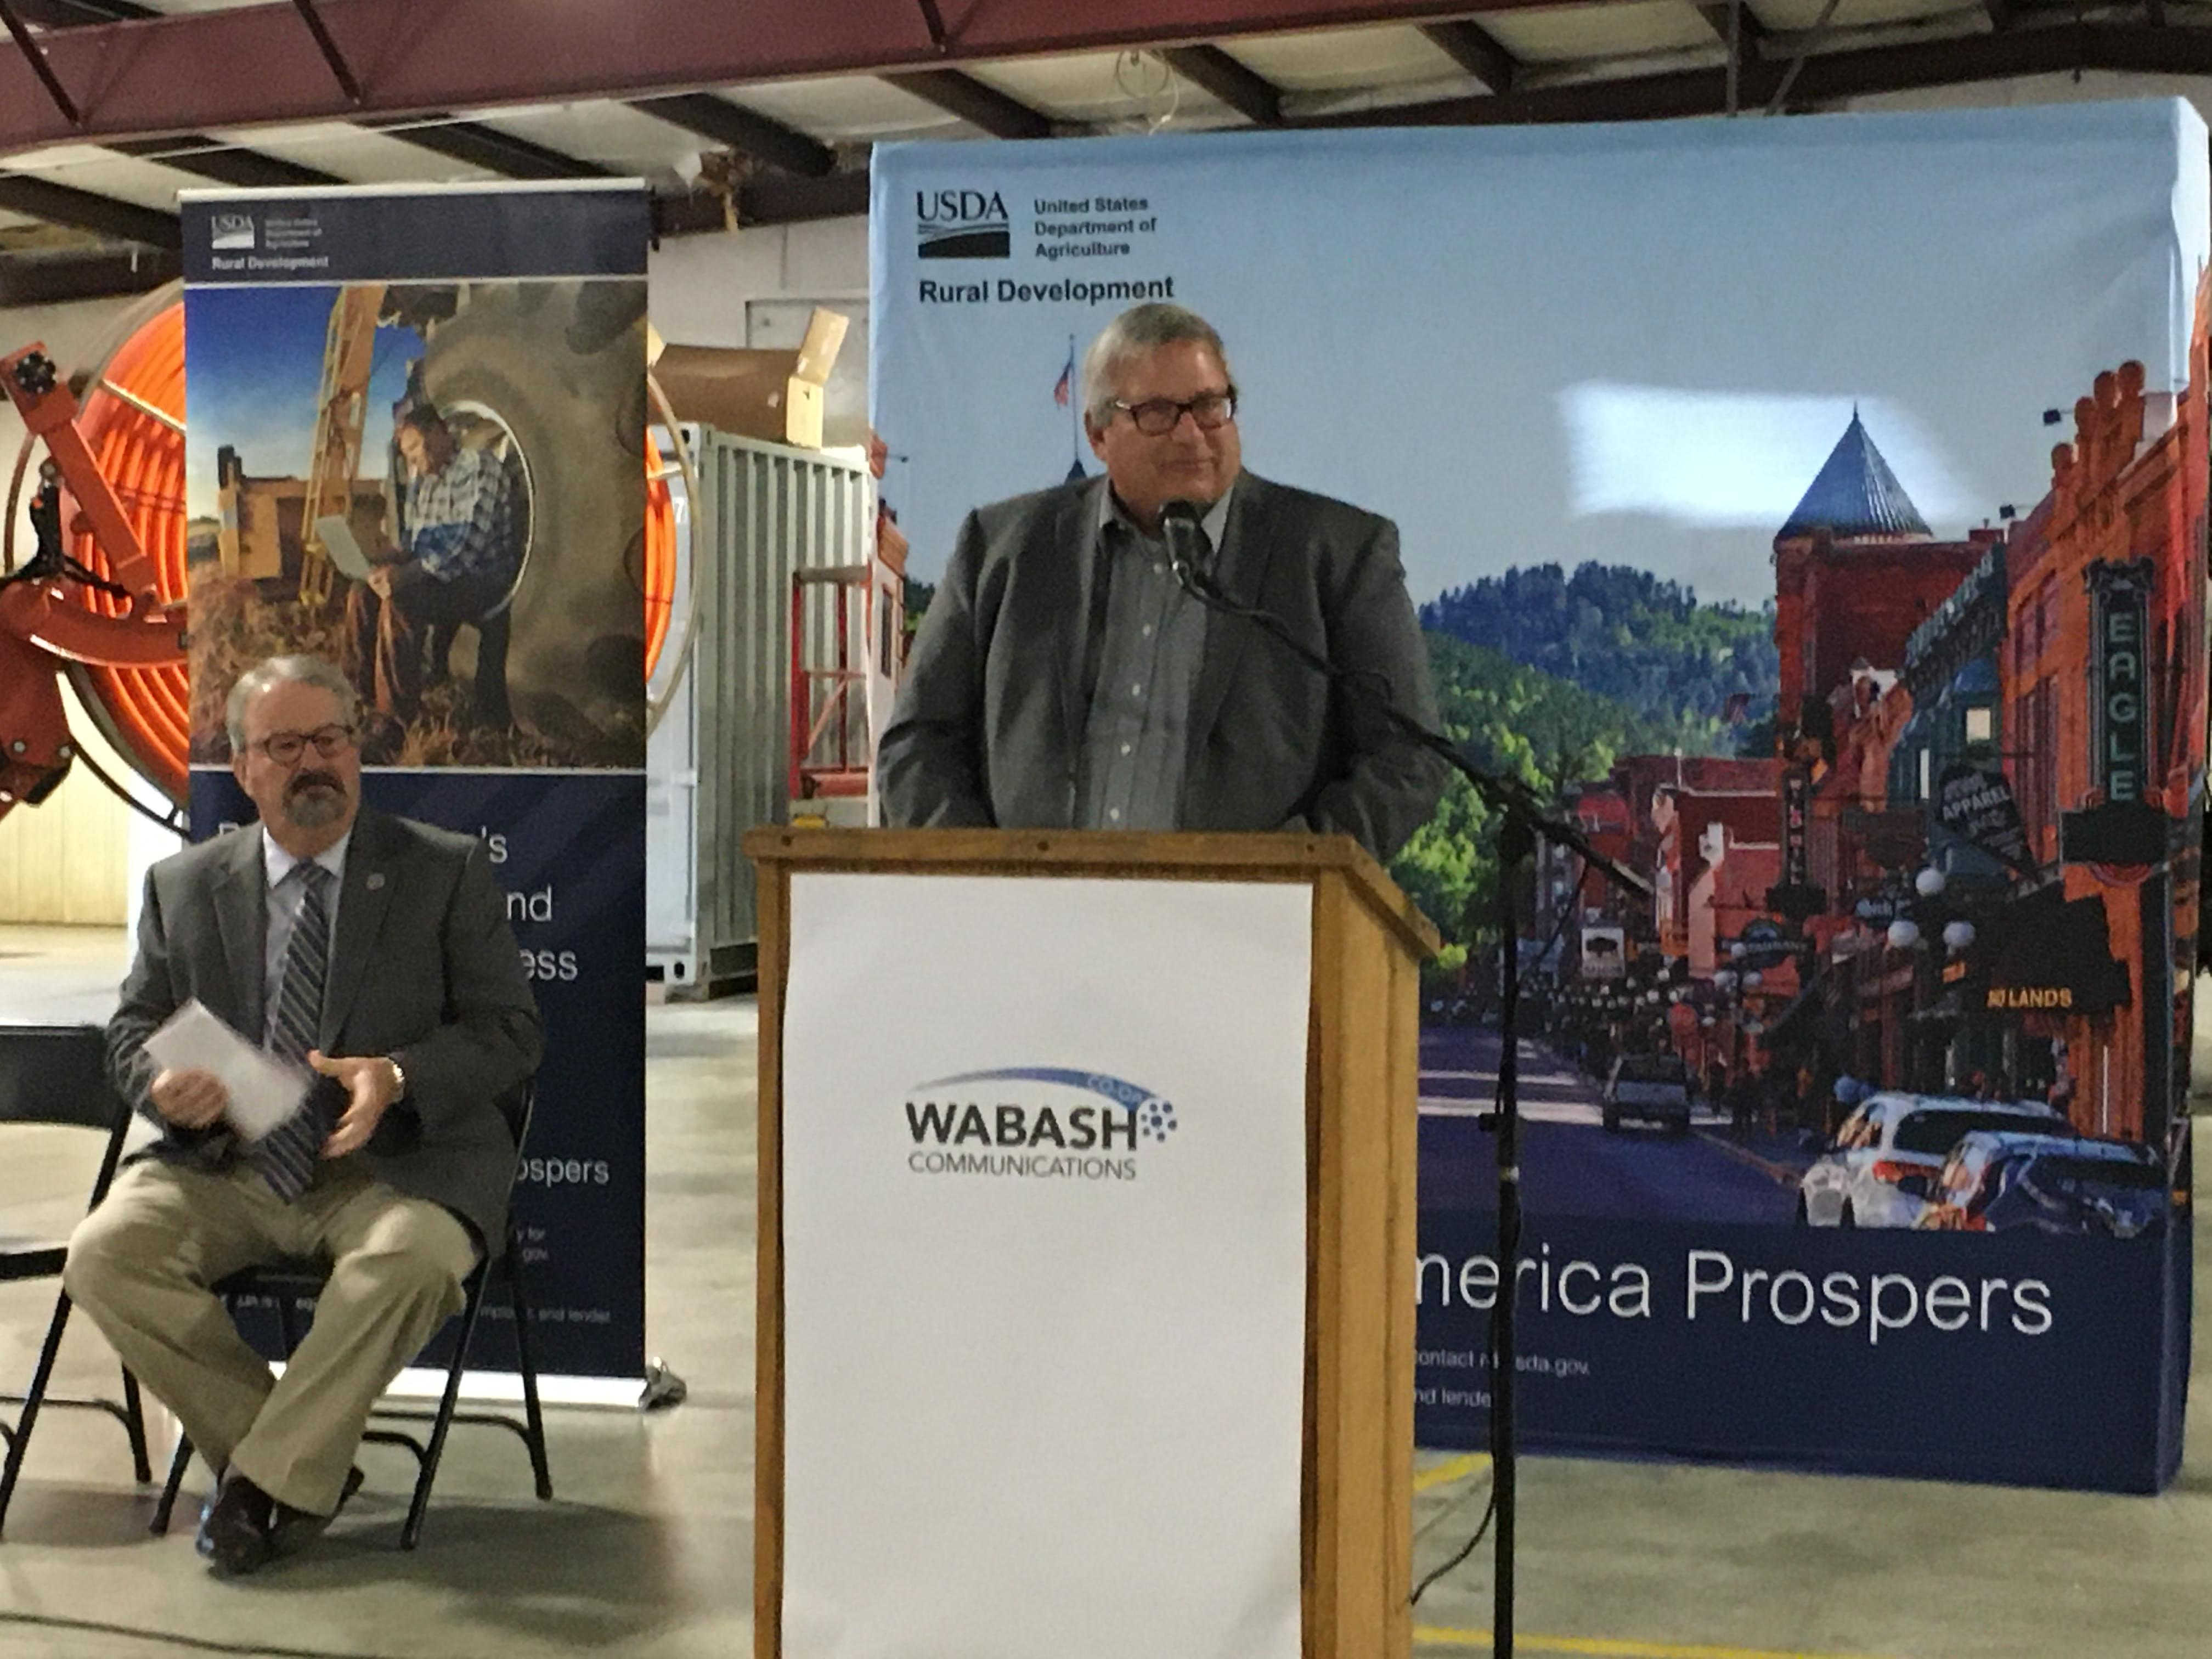 Wabash Communications Awarded Nearly $13 Million to Expand Broadband Internet in Rural Jefferson, Wayne Counties